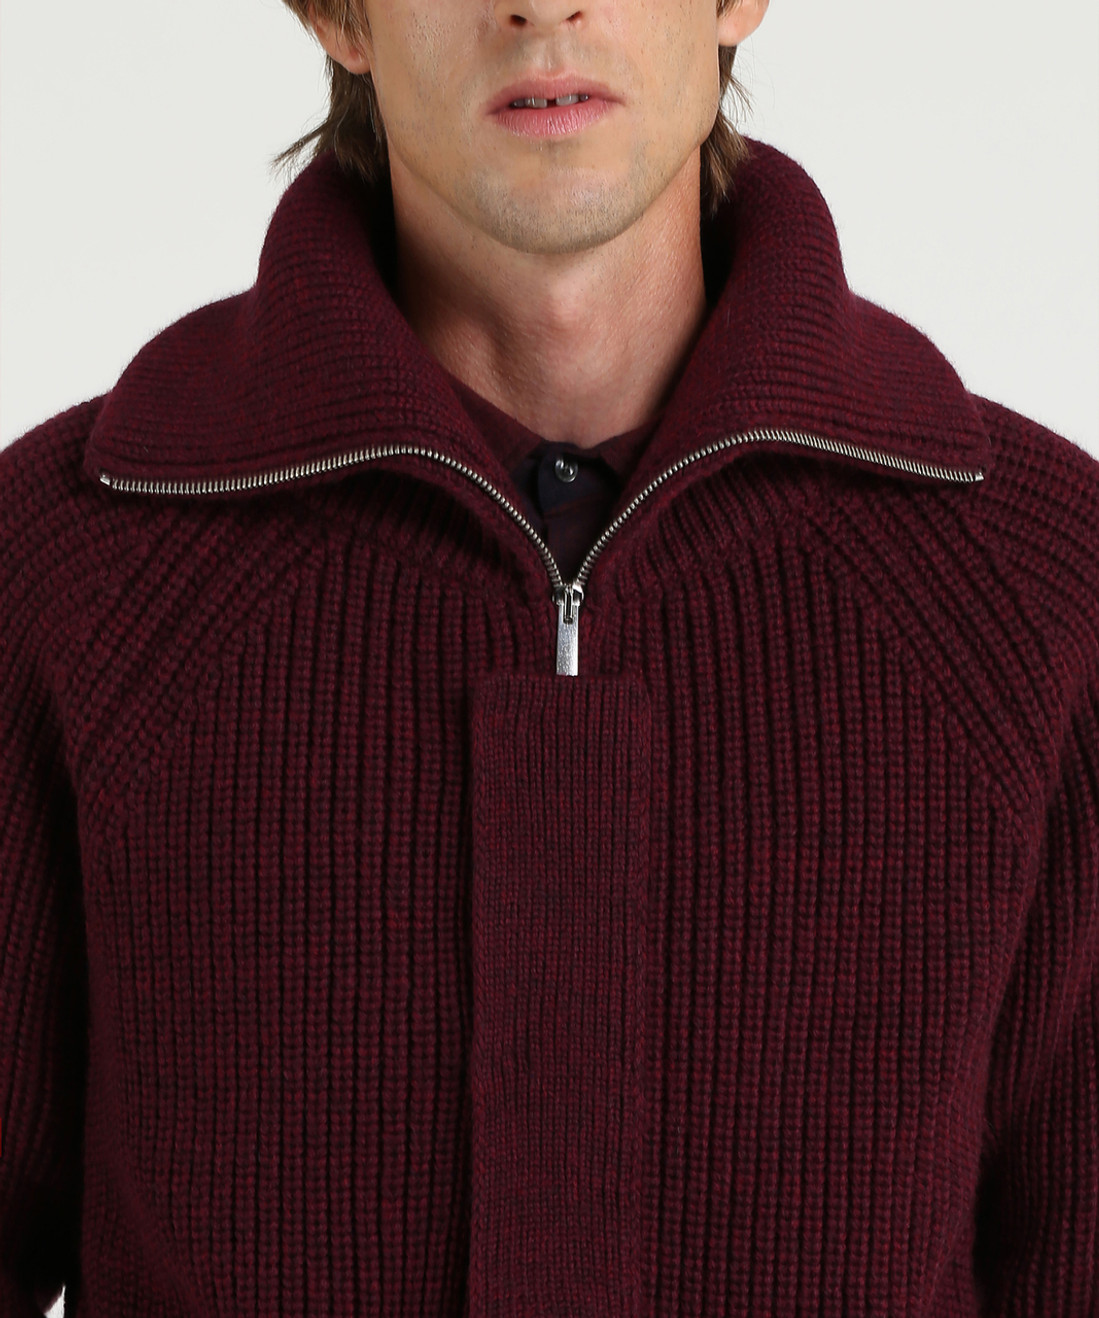 Men's Carded Wool Cardigan Sweater - Iconic Pack